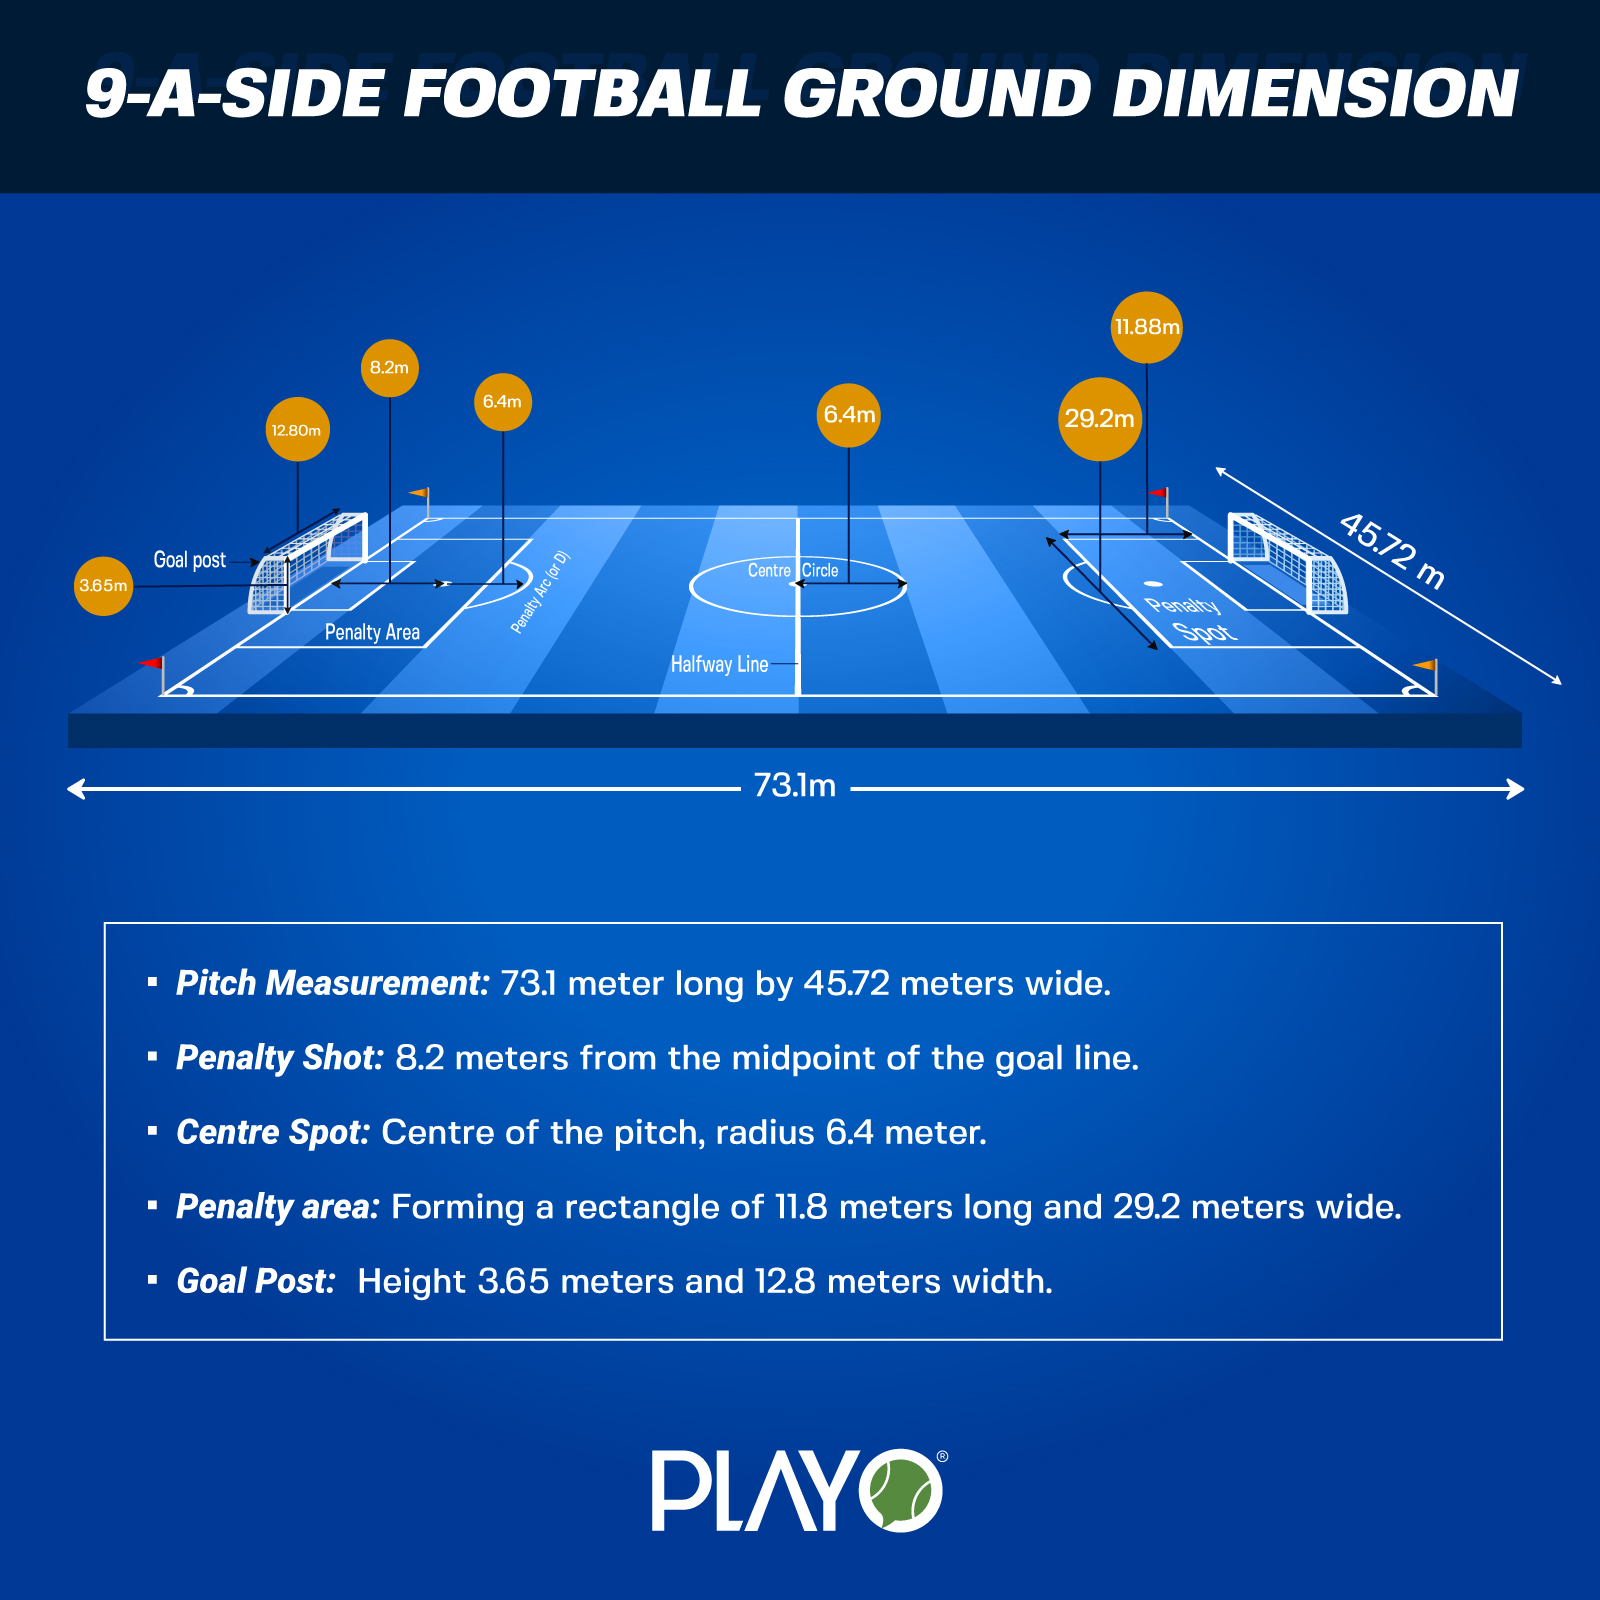 9-a-side dimensions